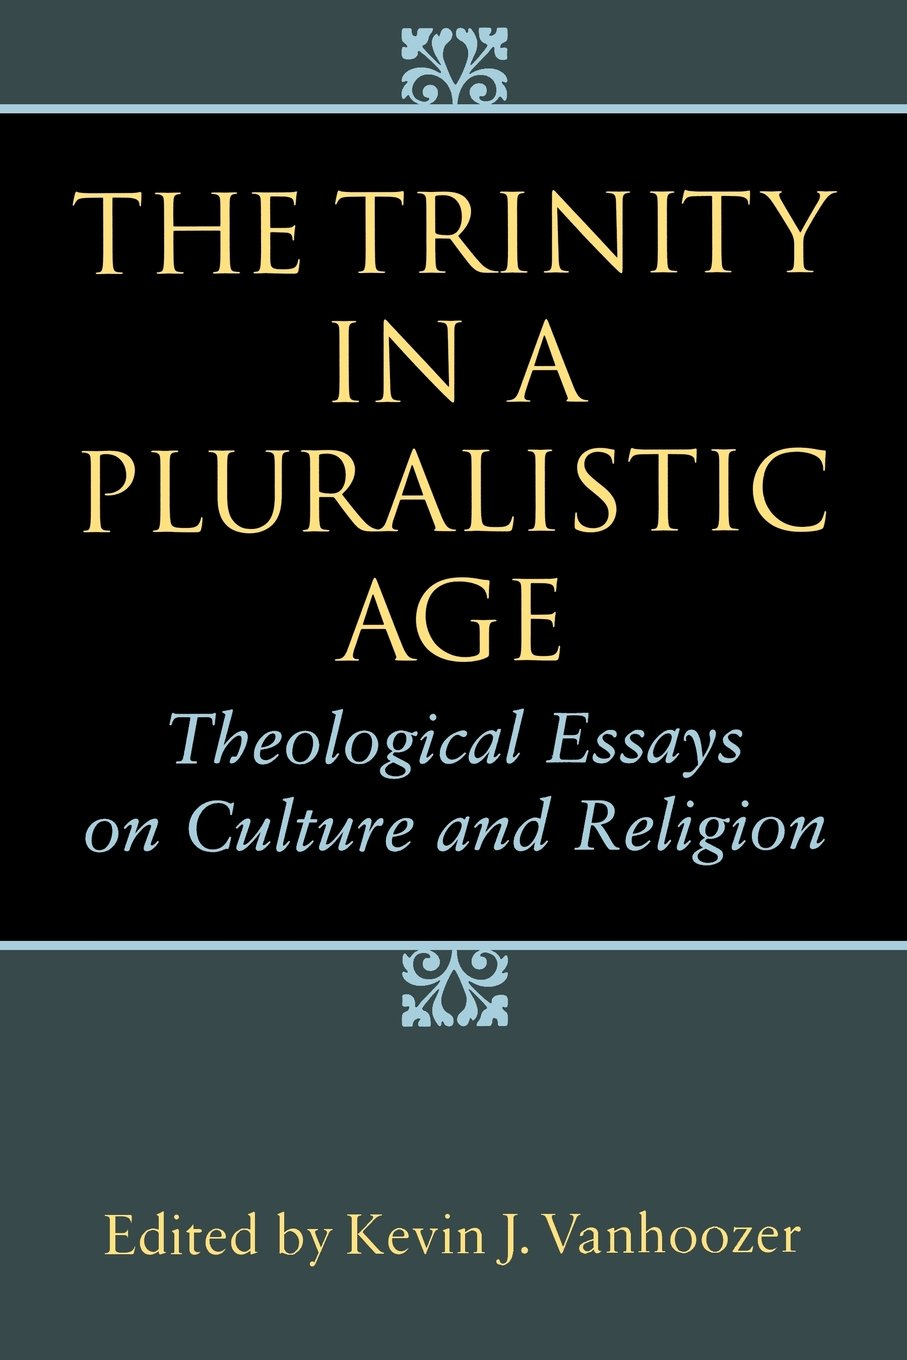 the trinity in a pluralistic age theological essays on culture the trinity in a pluralistic age theological essays on culture and religion mr kevin j vanhoozer 9780802841179 com books